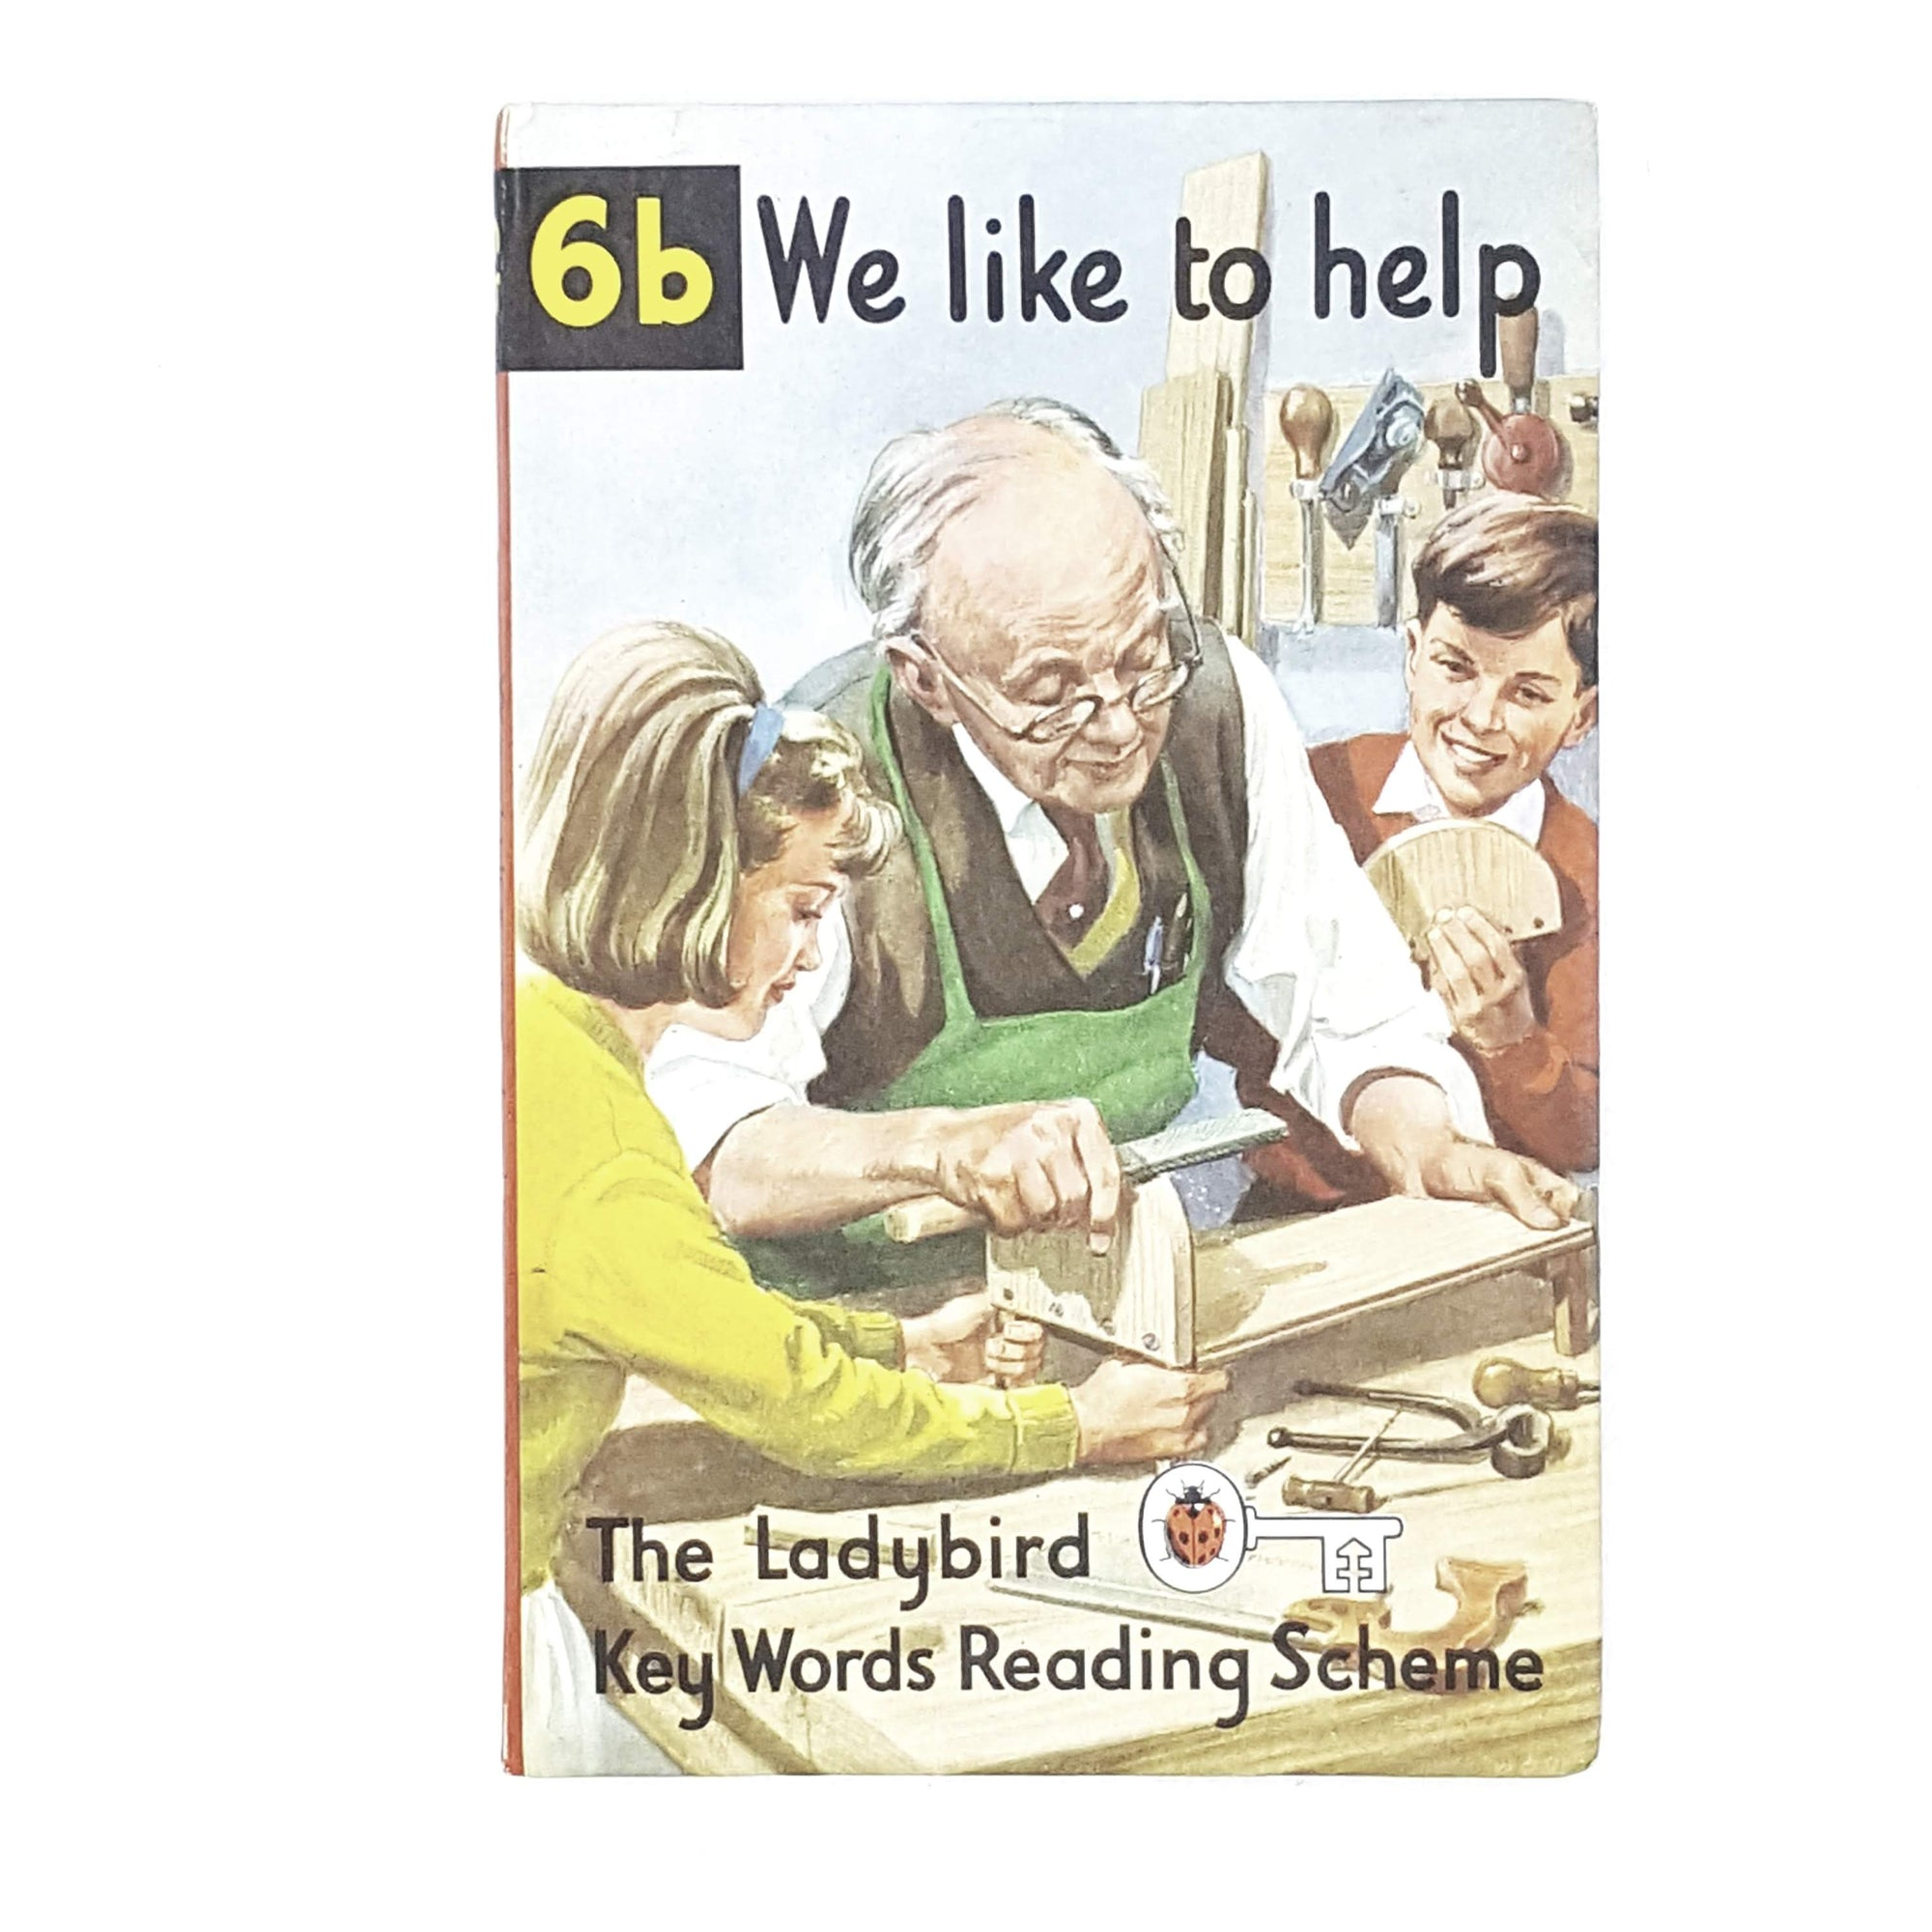 We Like to Help by W. Murray 1965